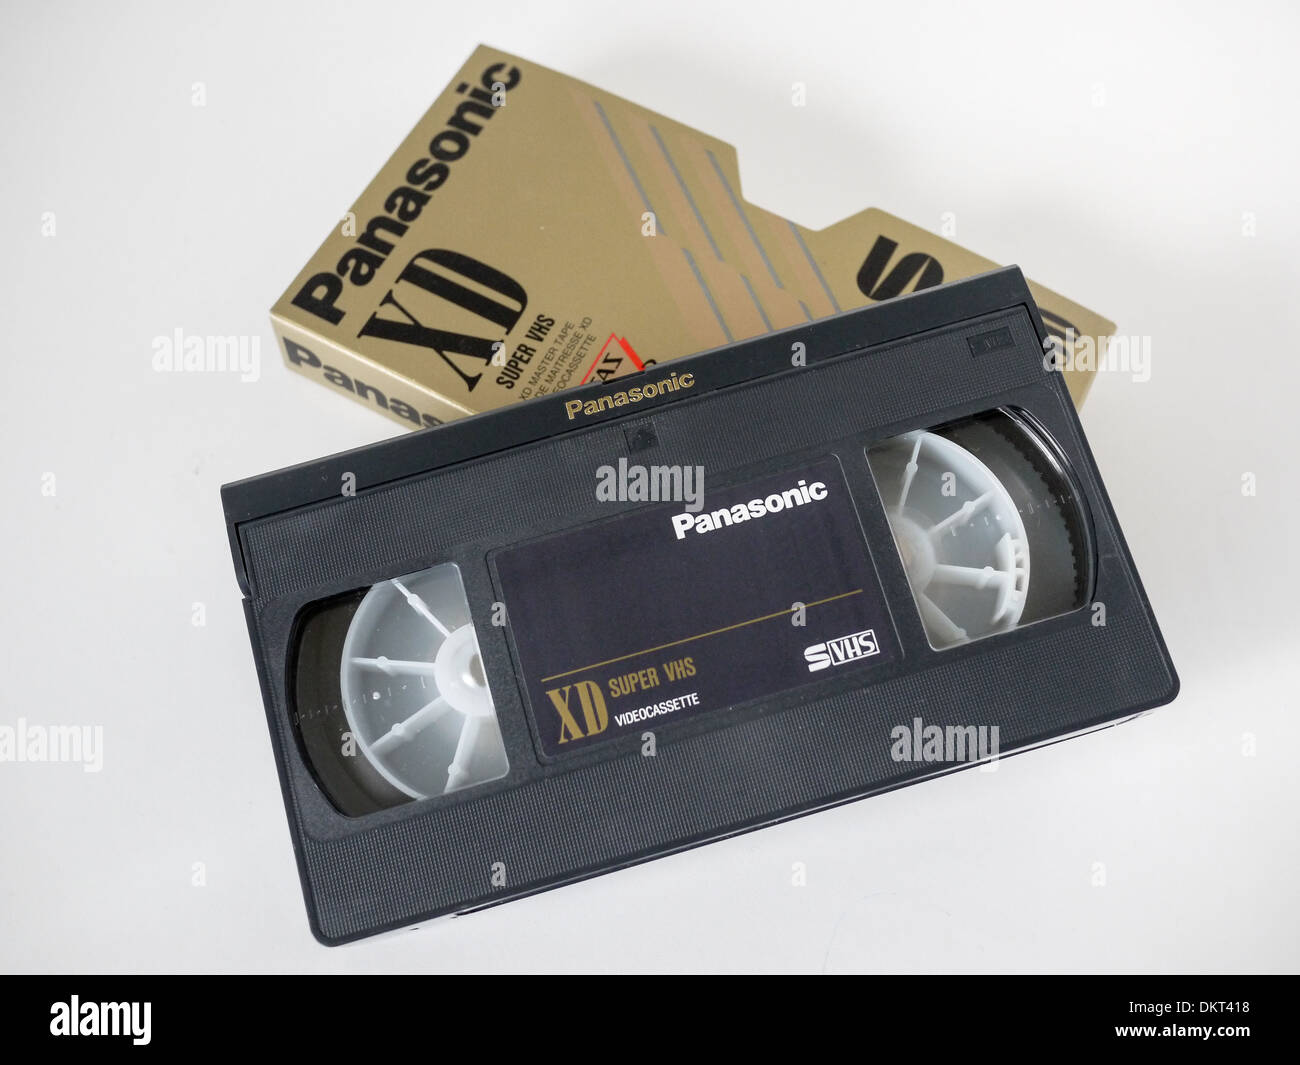 panasonic vhs tape - Stock Image